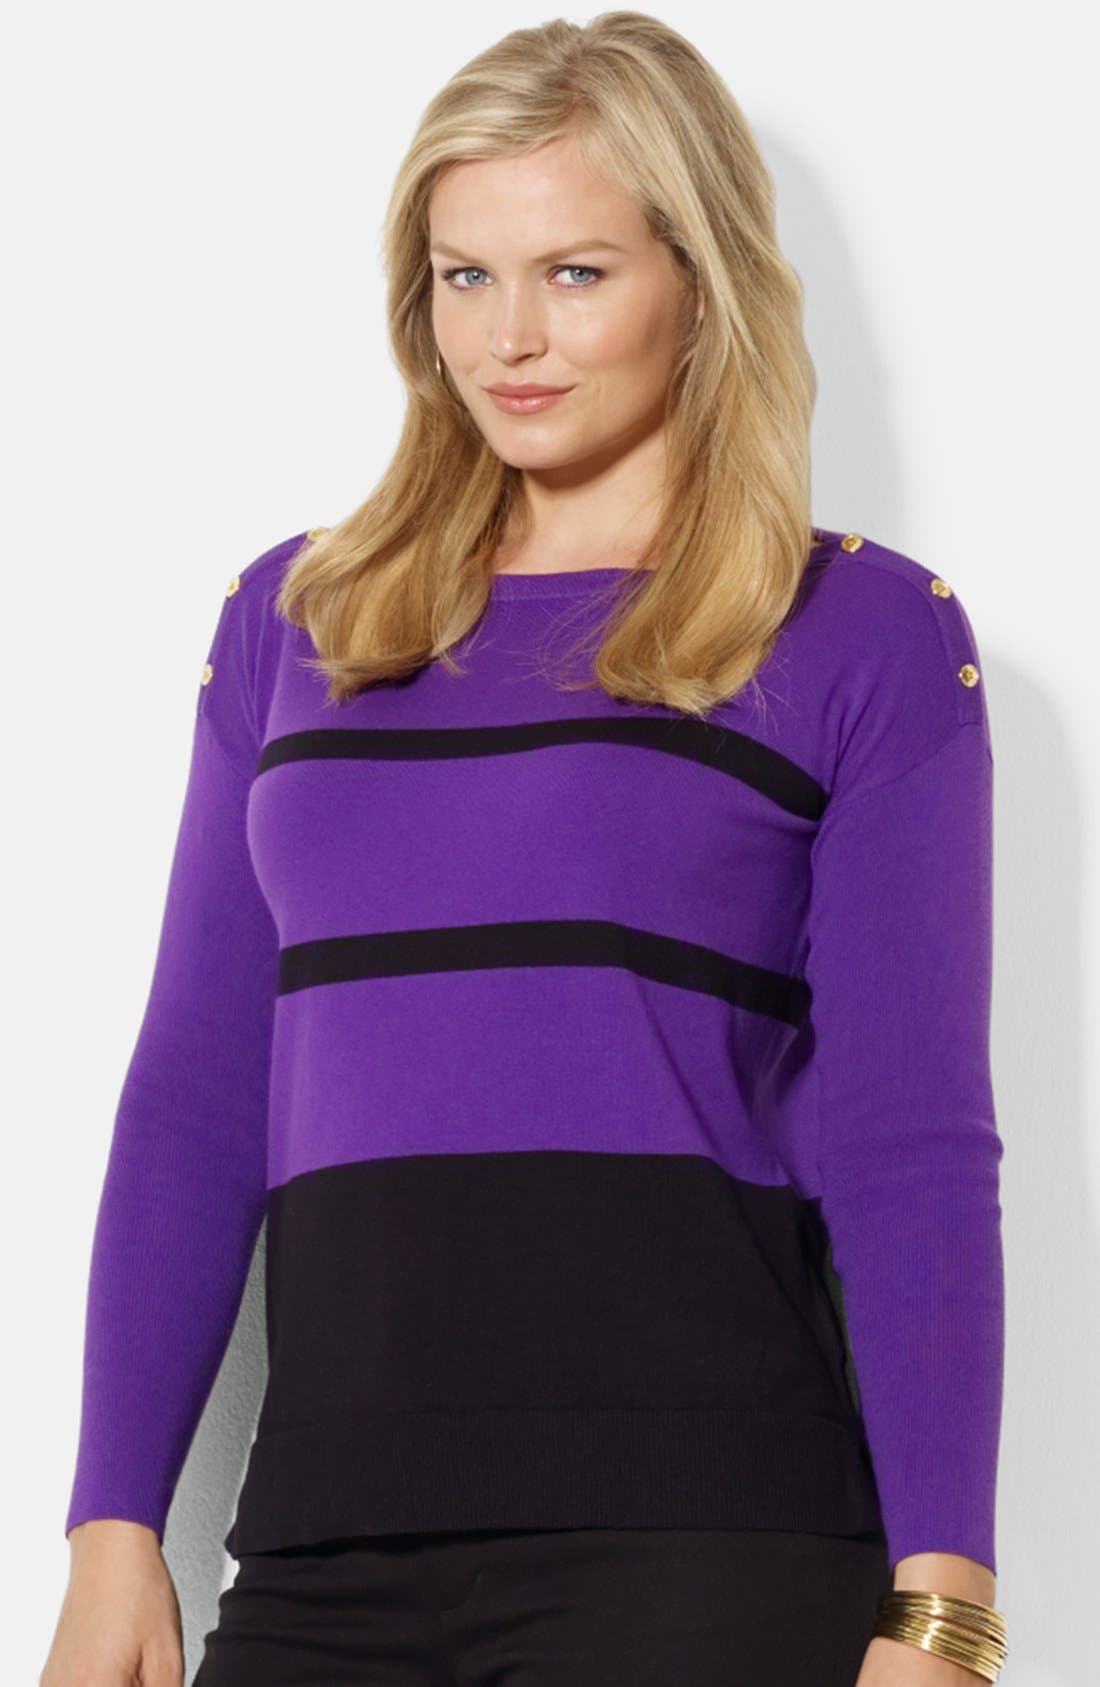 Alternate Image 1 Selected - Lauren Ralph Lauren Cotton Blend Sweater (Plus Size)